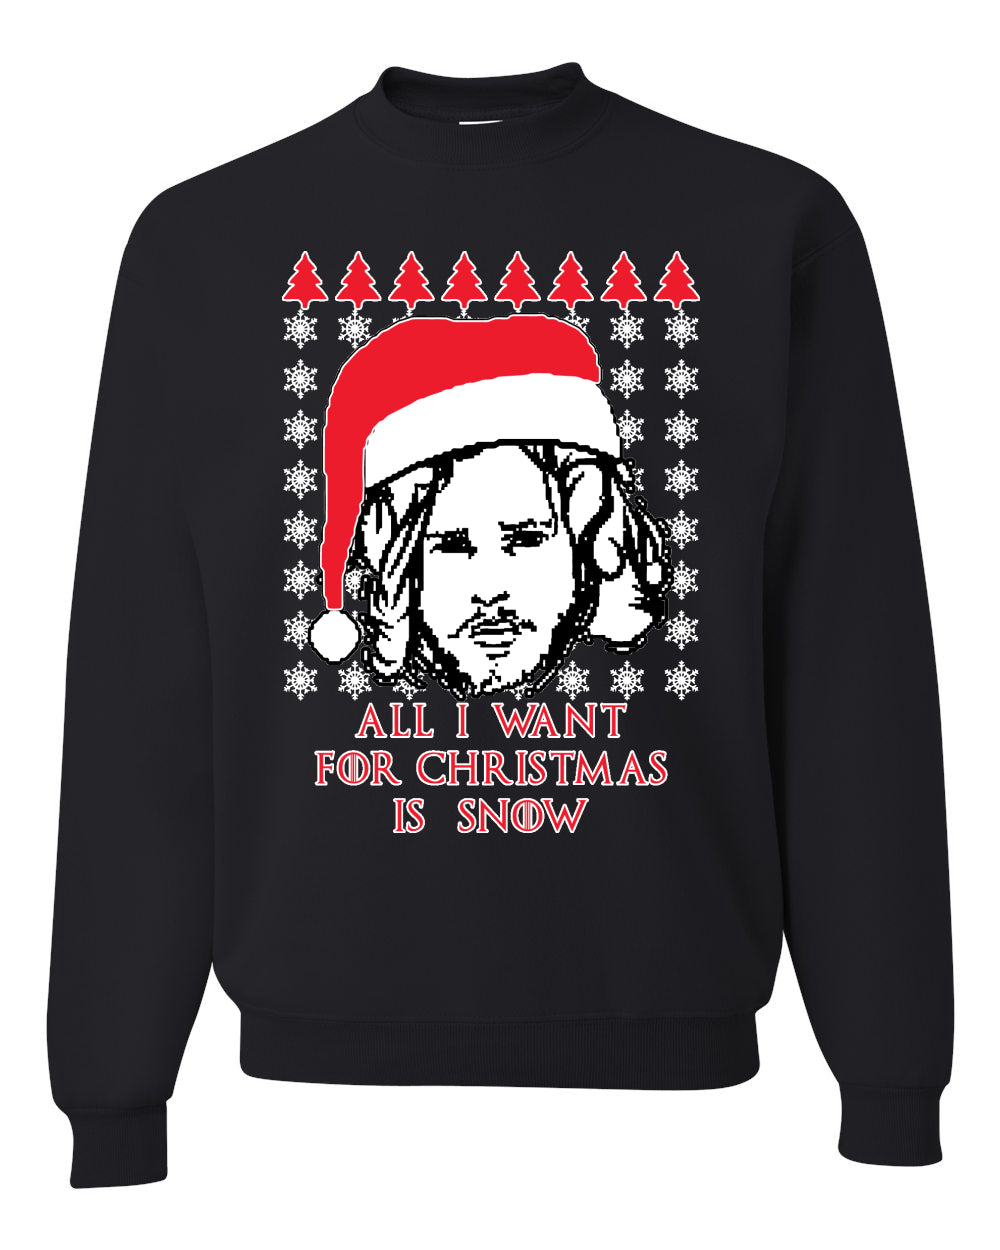 All I Want for Christmas is Snow | GoT Stark Unisex Crewneck Graphic Sweatshirt